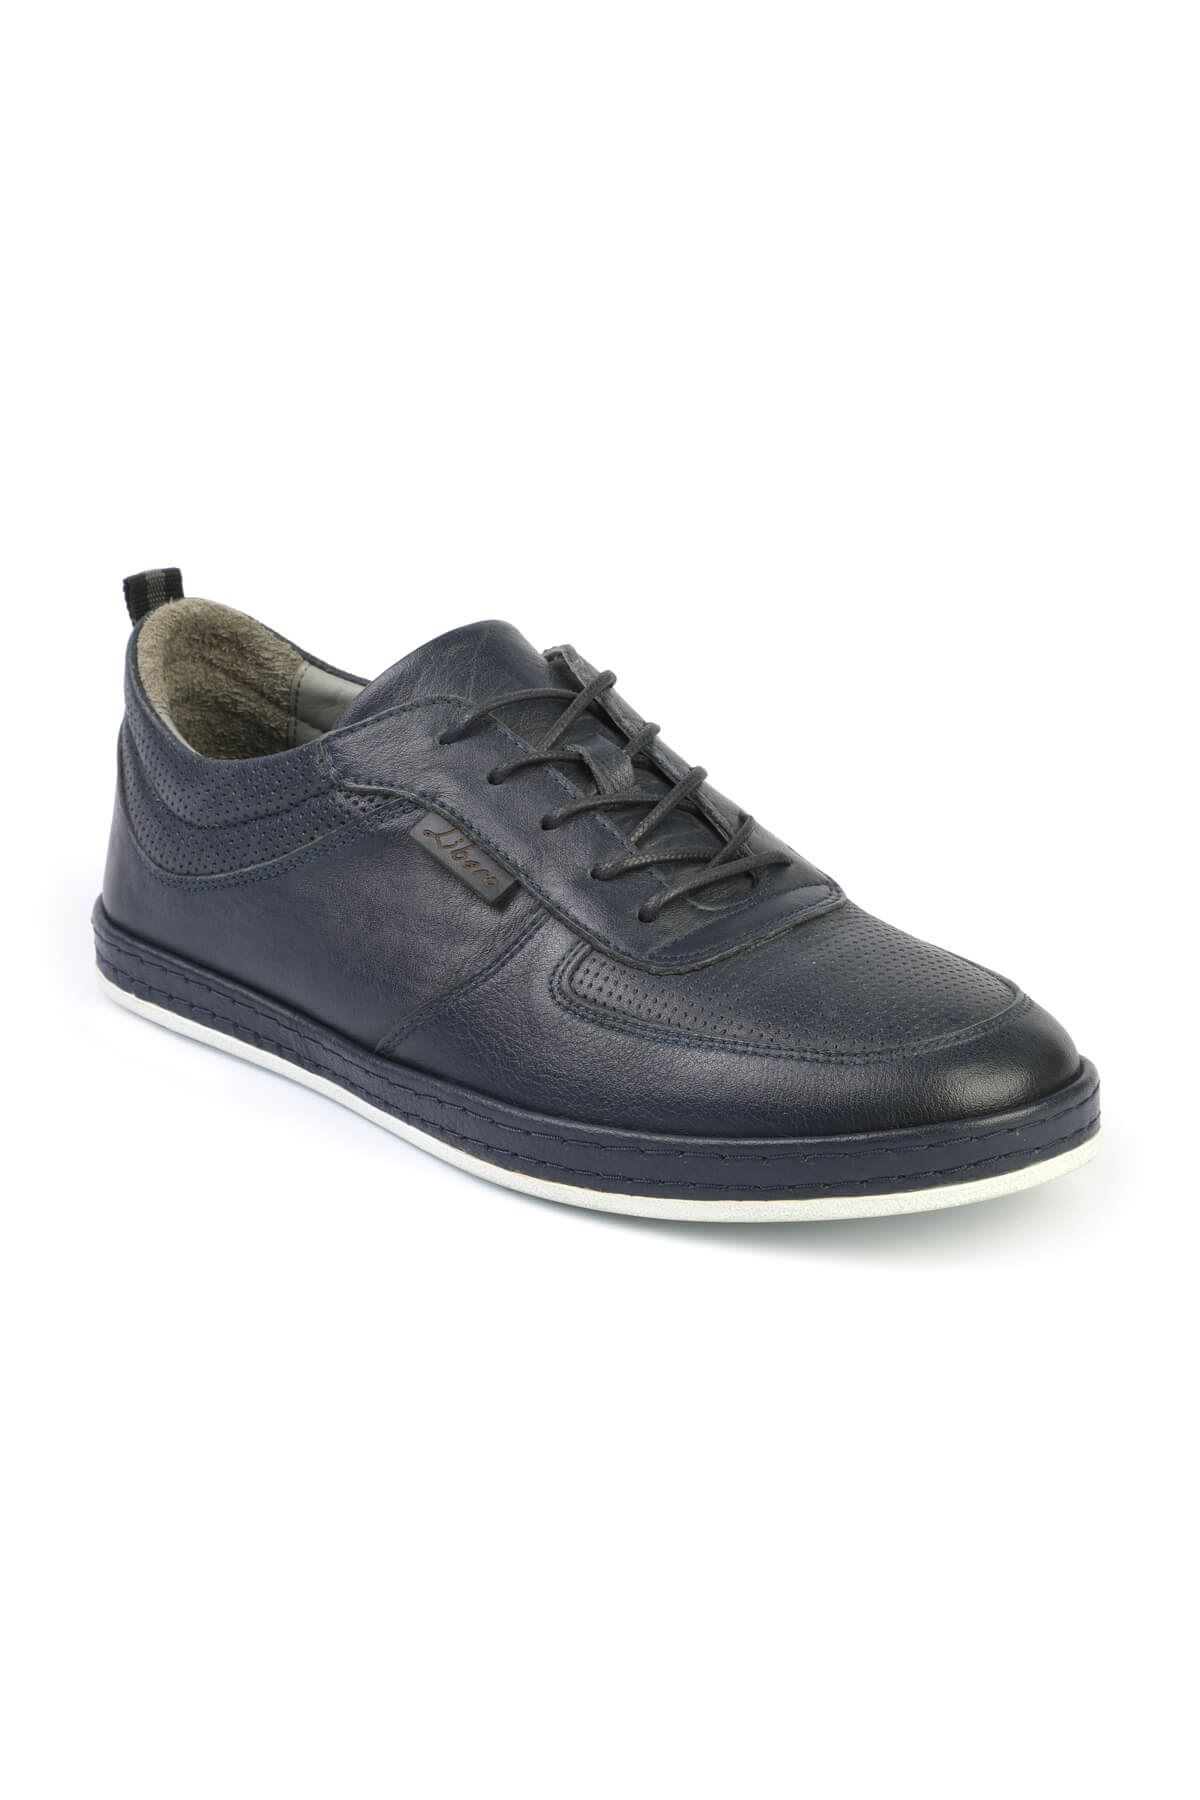 Libero 3063 Navy Blue Sport Shoes